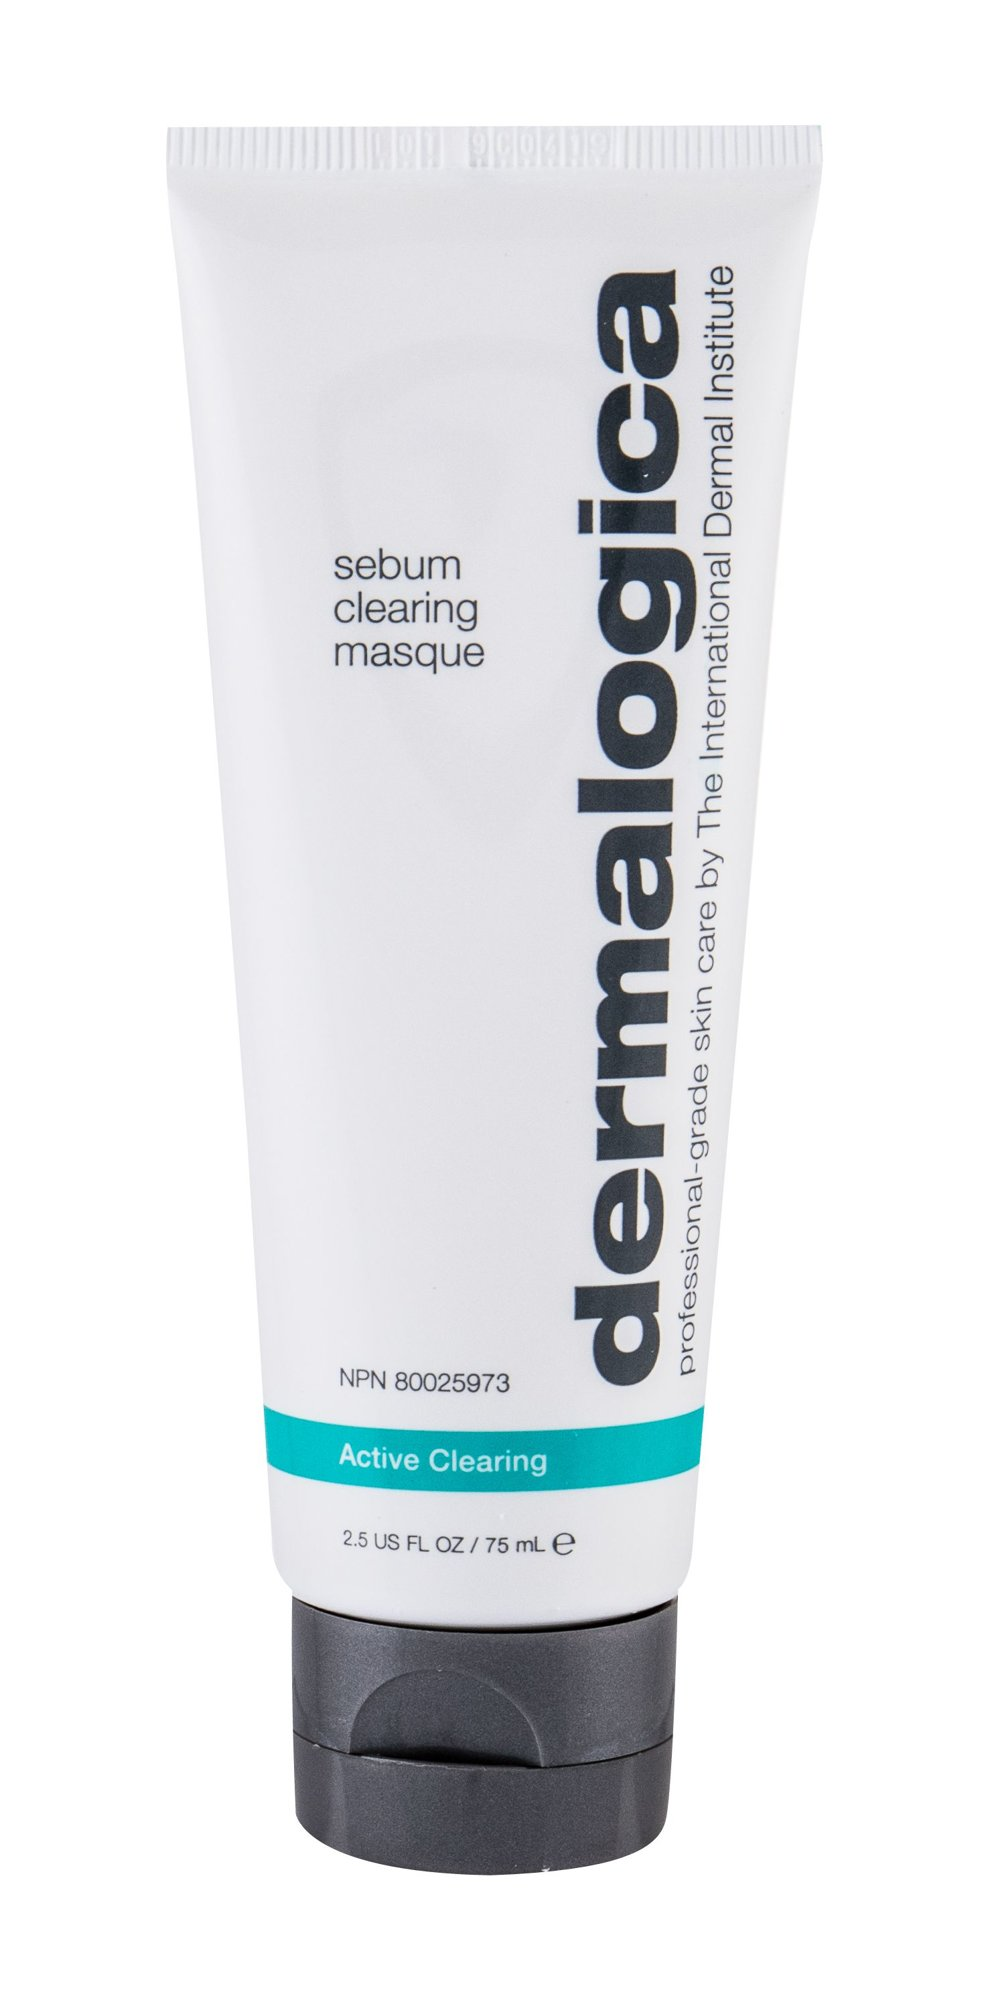 Dermalogica Active Clearing Face Mask 75ml  Sebum Clearing Masque